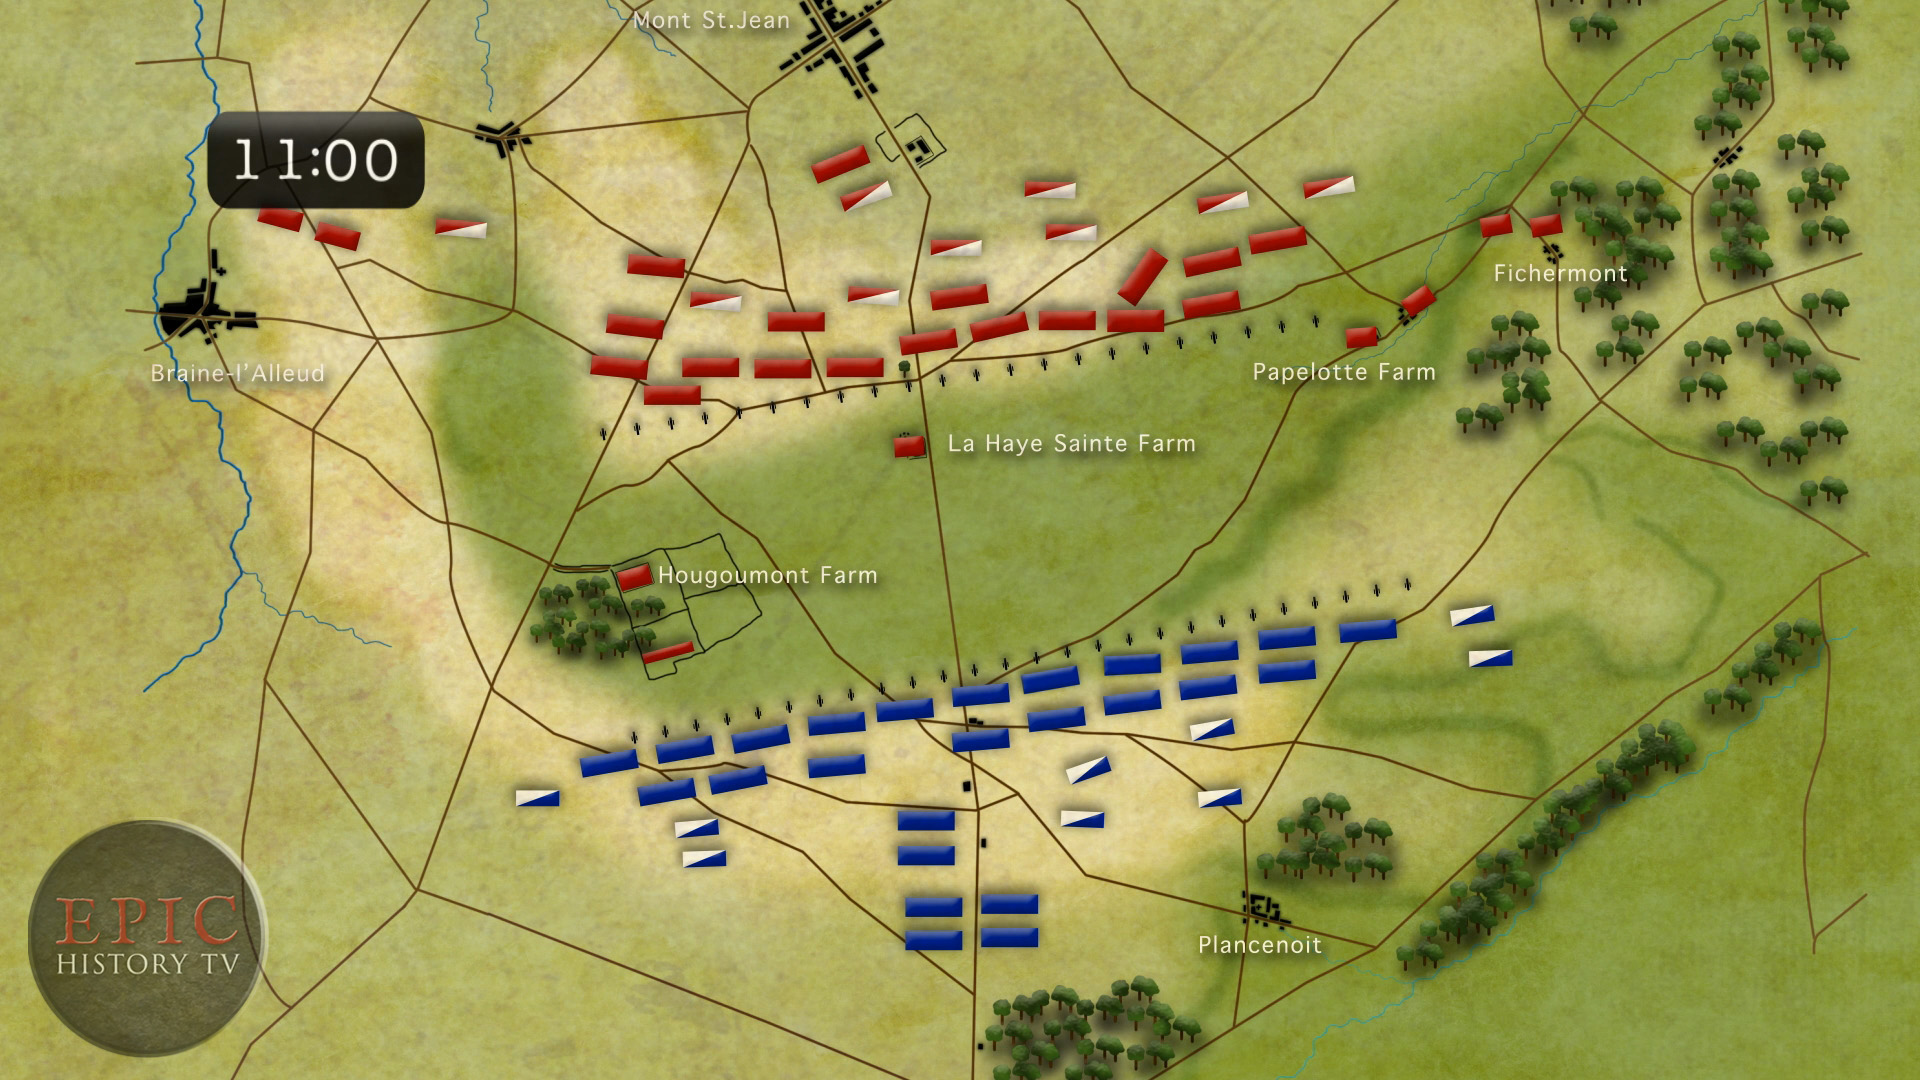 The Battle of Waterloo was fought 8 miles south of Brussels, on a battlefield chosen by  the Duke of Wellington,  commander of the Anglo-Allied army, for its defensive potential. The Anglo-Allied troops (RED) were deployed behind a gentle ridge, which offered protection from French artillery fire. Three farmhouses forward of the line, at Hougoumont, La Haye Sainte, and Papelotte, were fortified and garrisoned with elite troops. It was a deceptively strong position, but Wellington remained concerned that many of his troops were untested in combat.  WATCH VIDEO